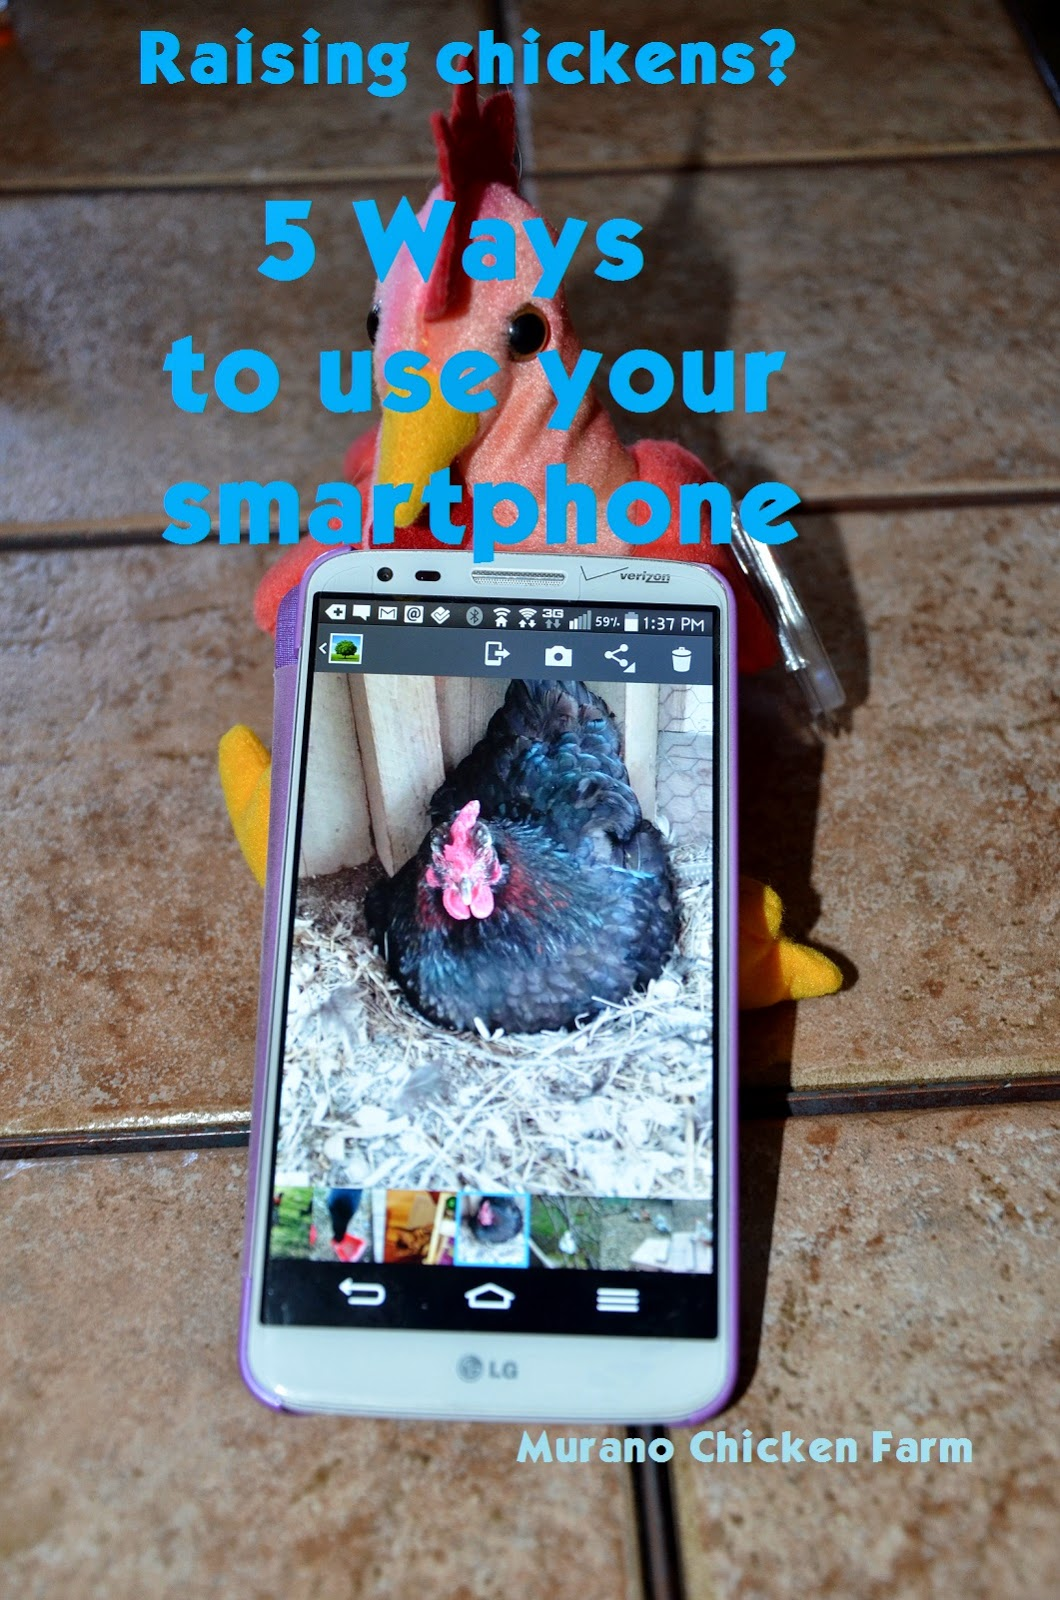 Raising chickens? 5 uses for a smartphone